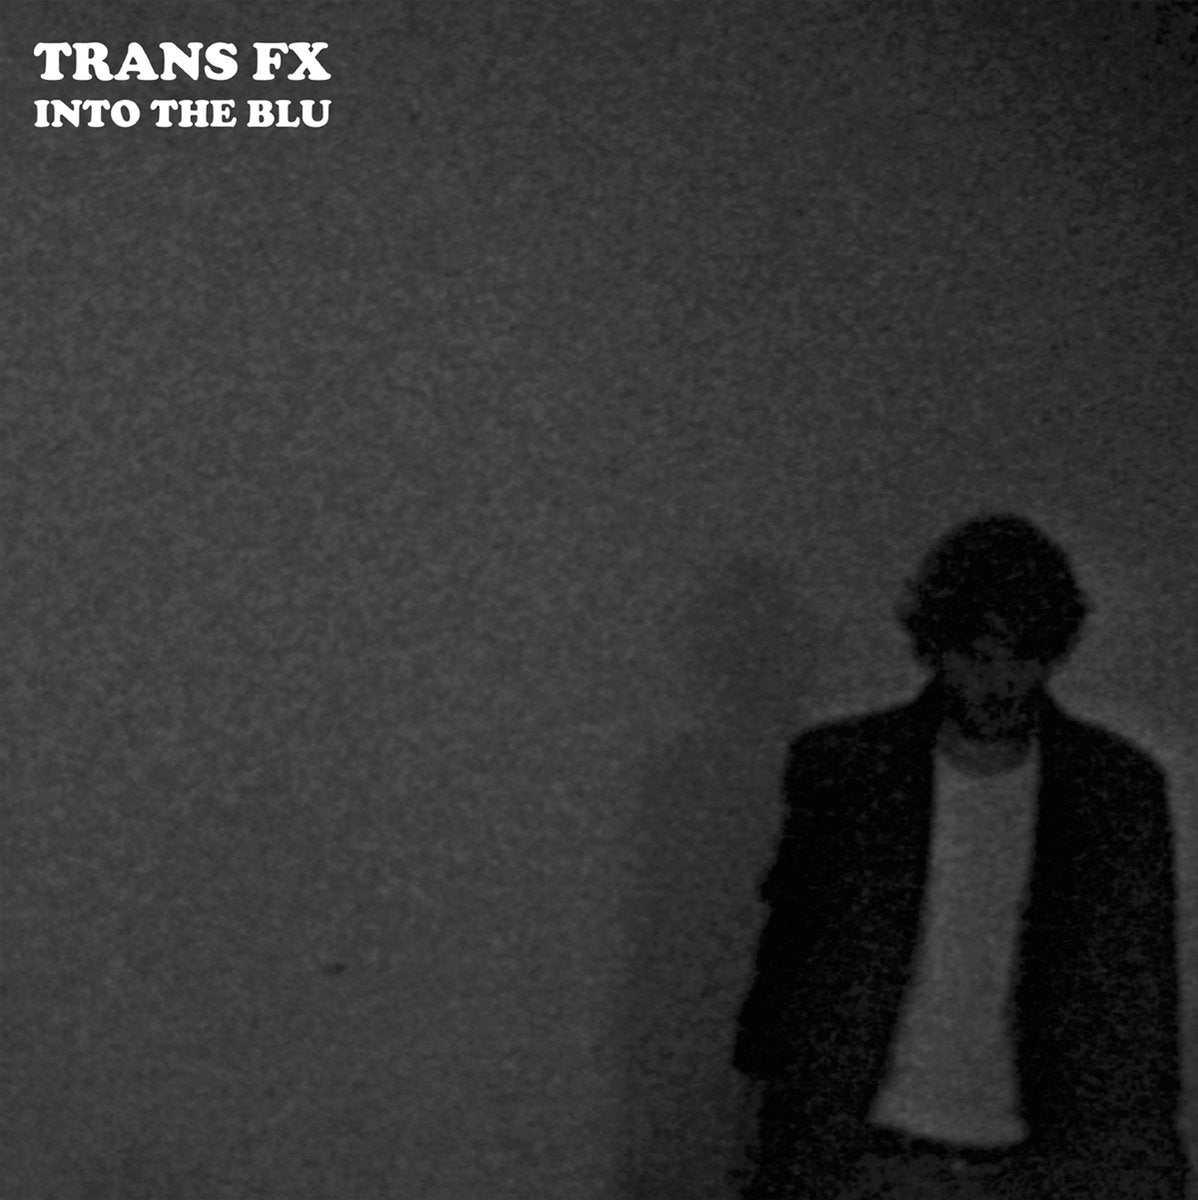 Trans FX - Into the Blu - LP